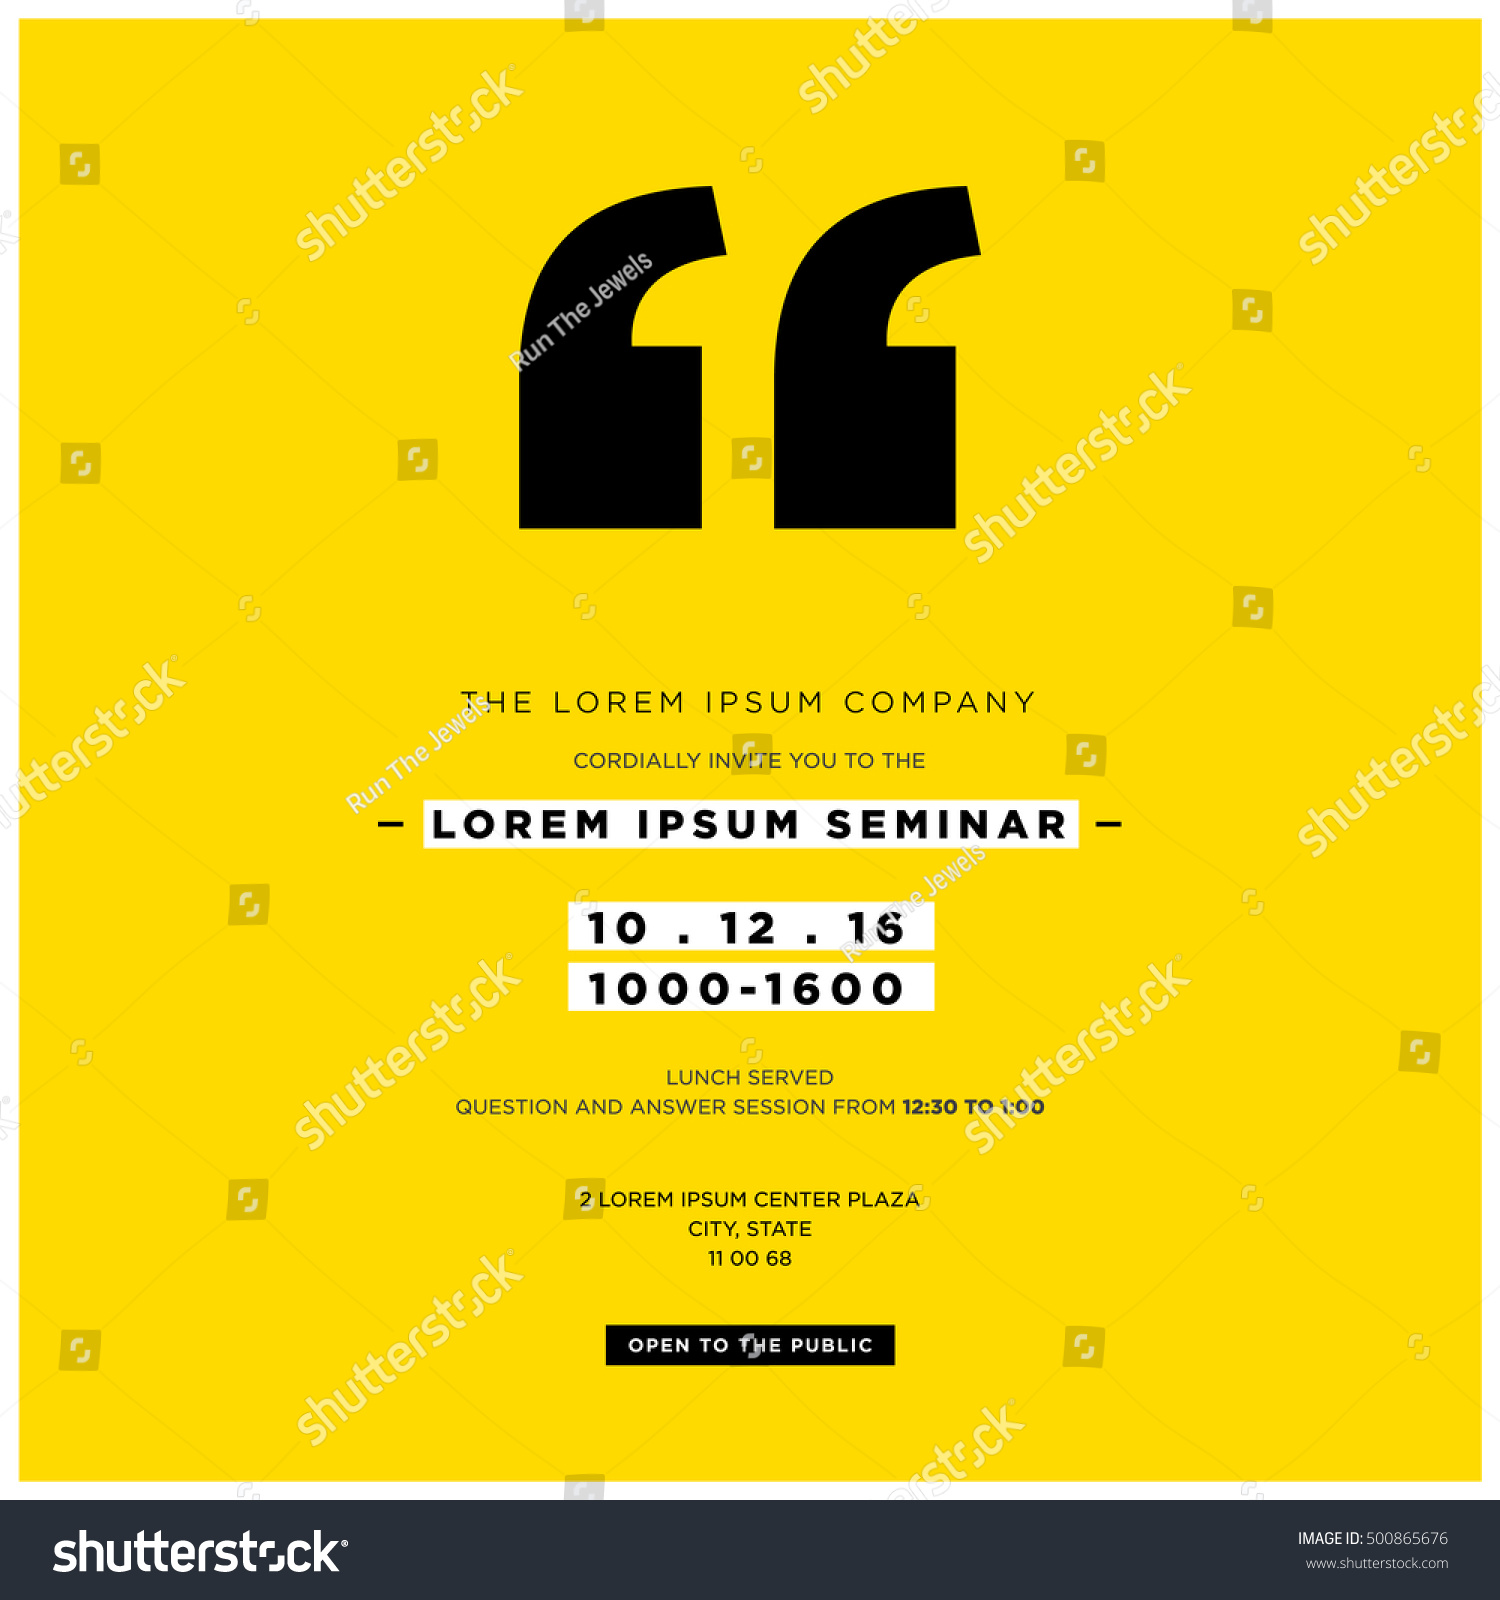 business seminar invitation design template with stock vector